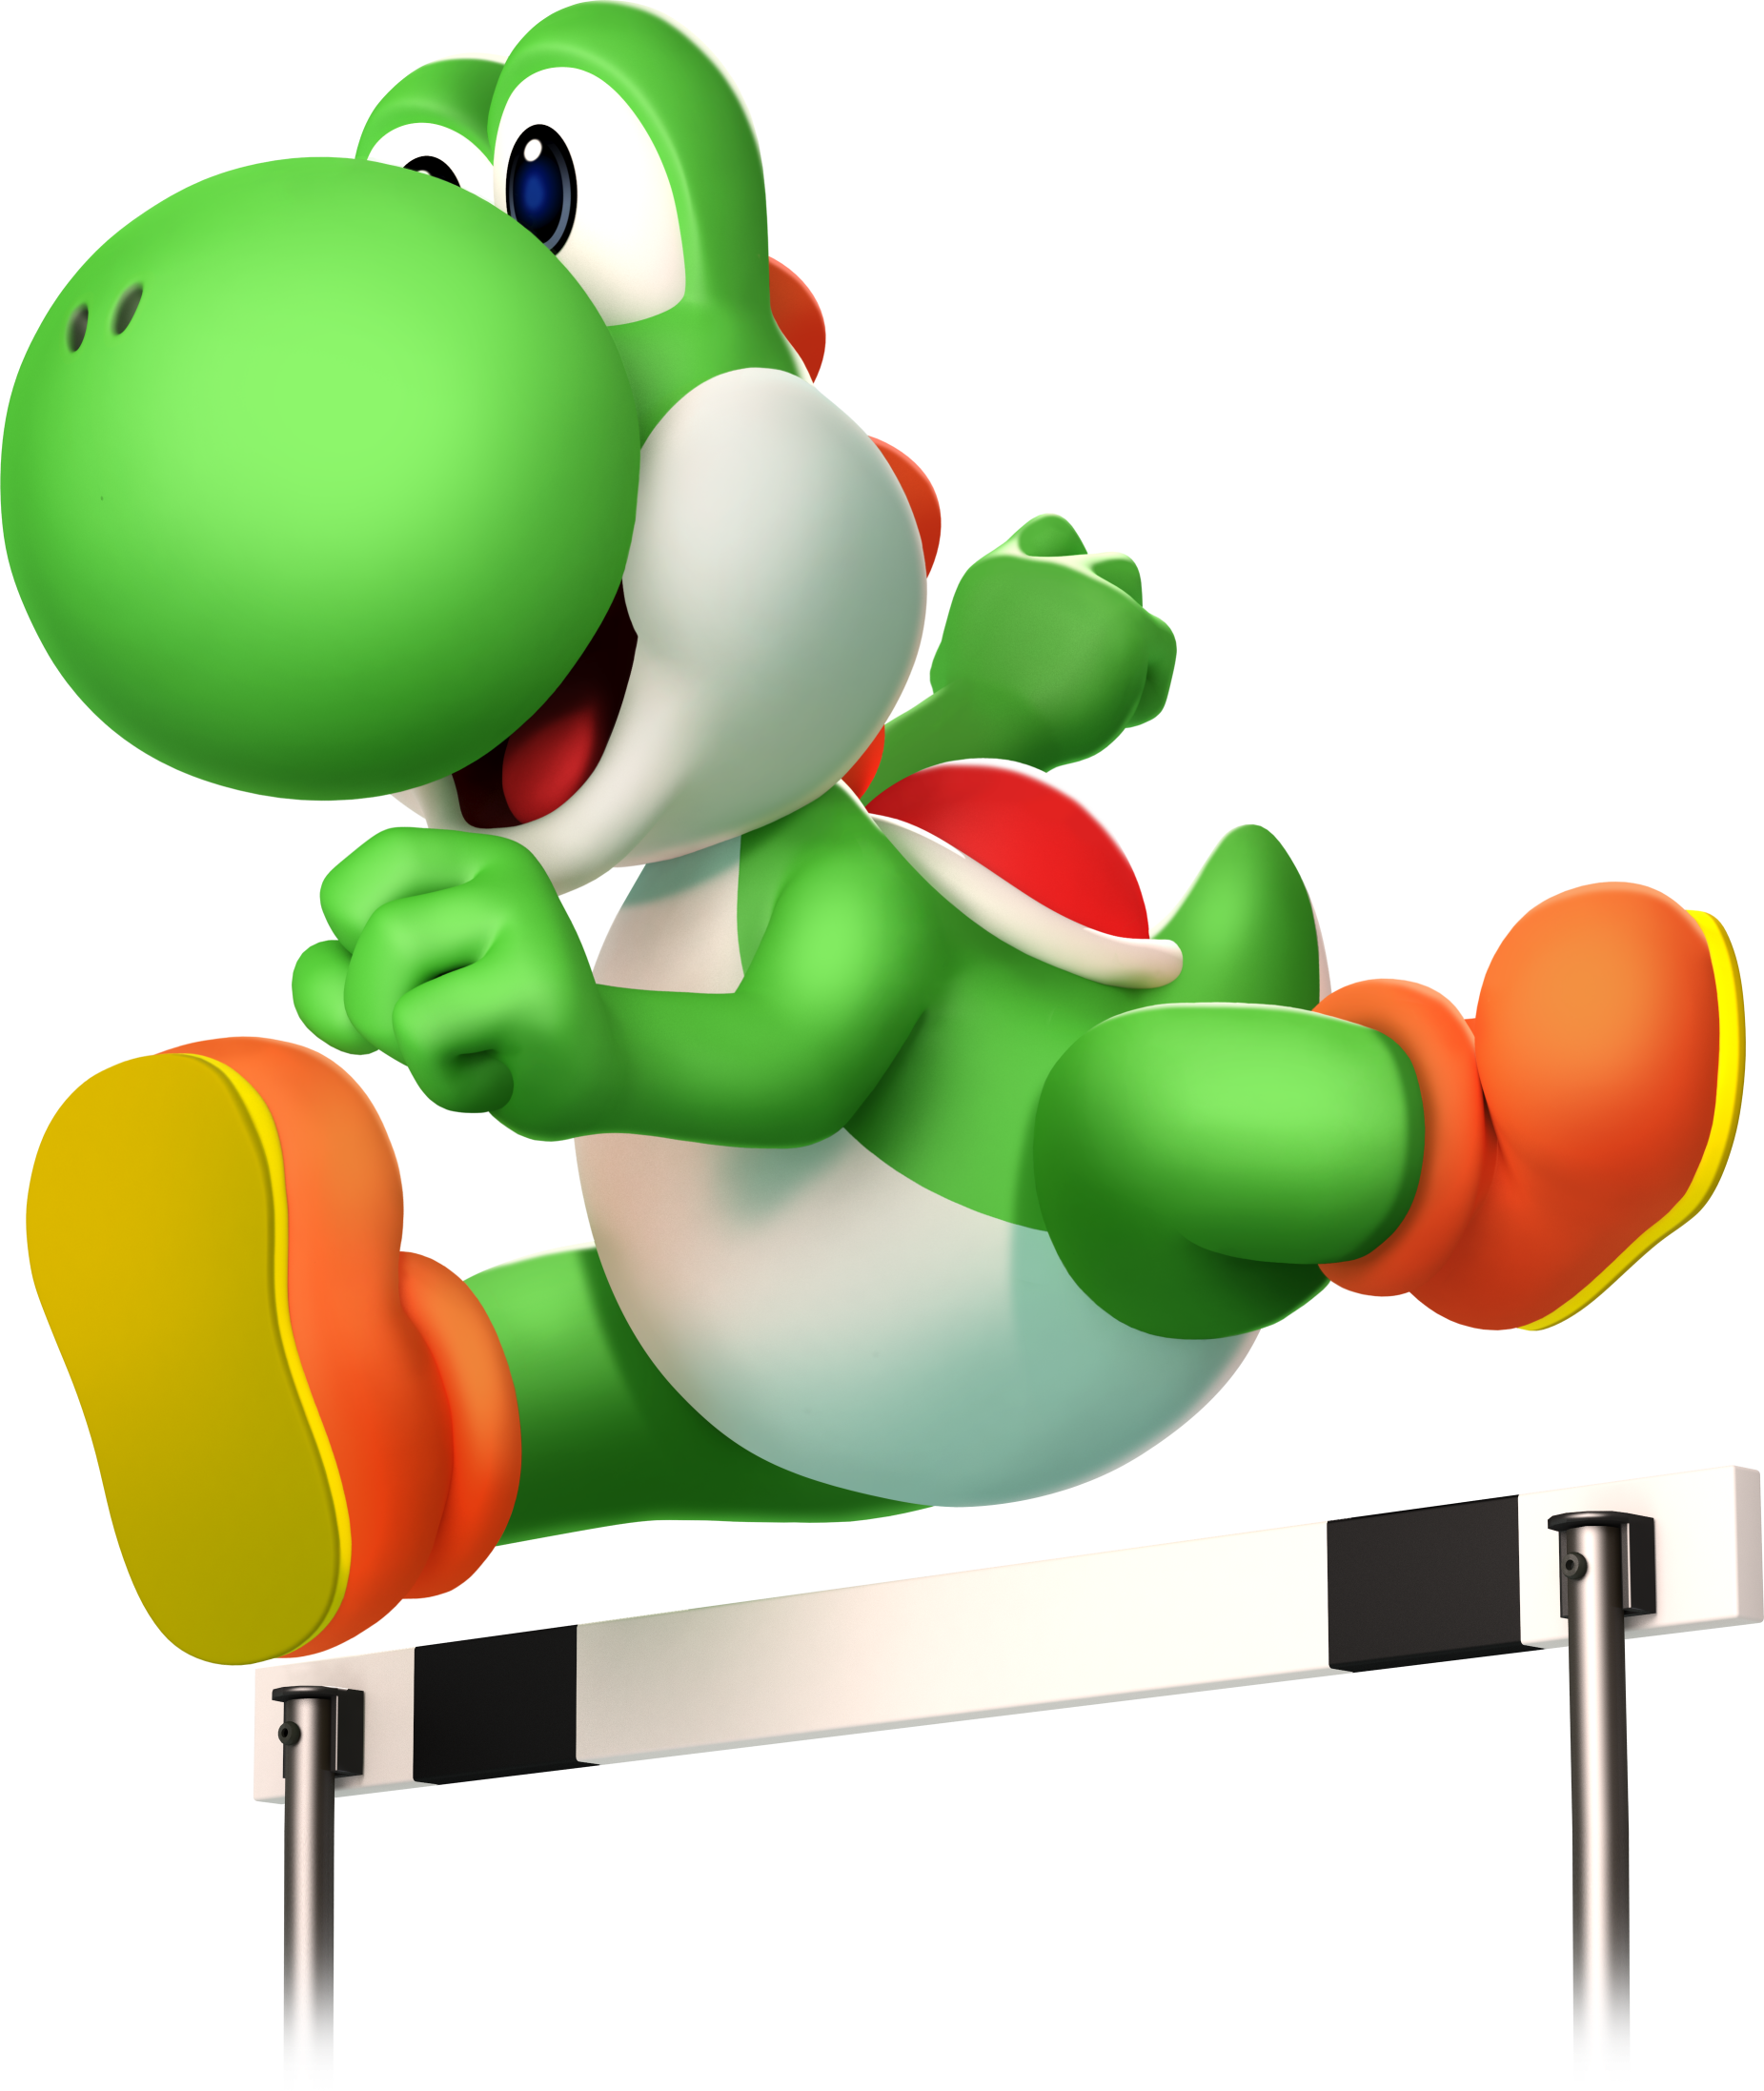 Image - Yoshi 2012 Games.png - Fantendo, the Video Game Fanon Wiki